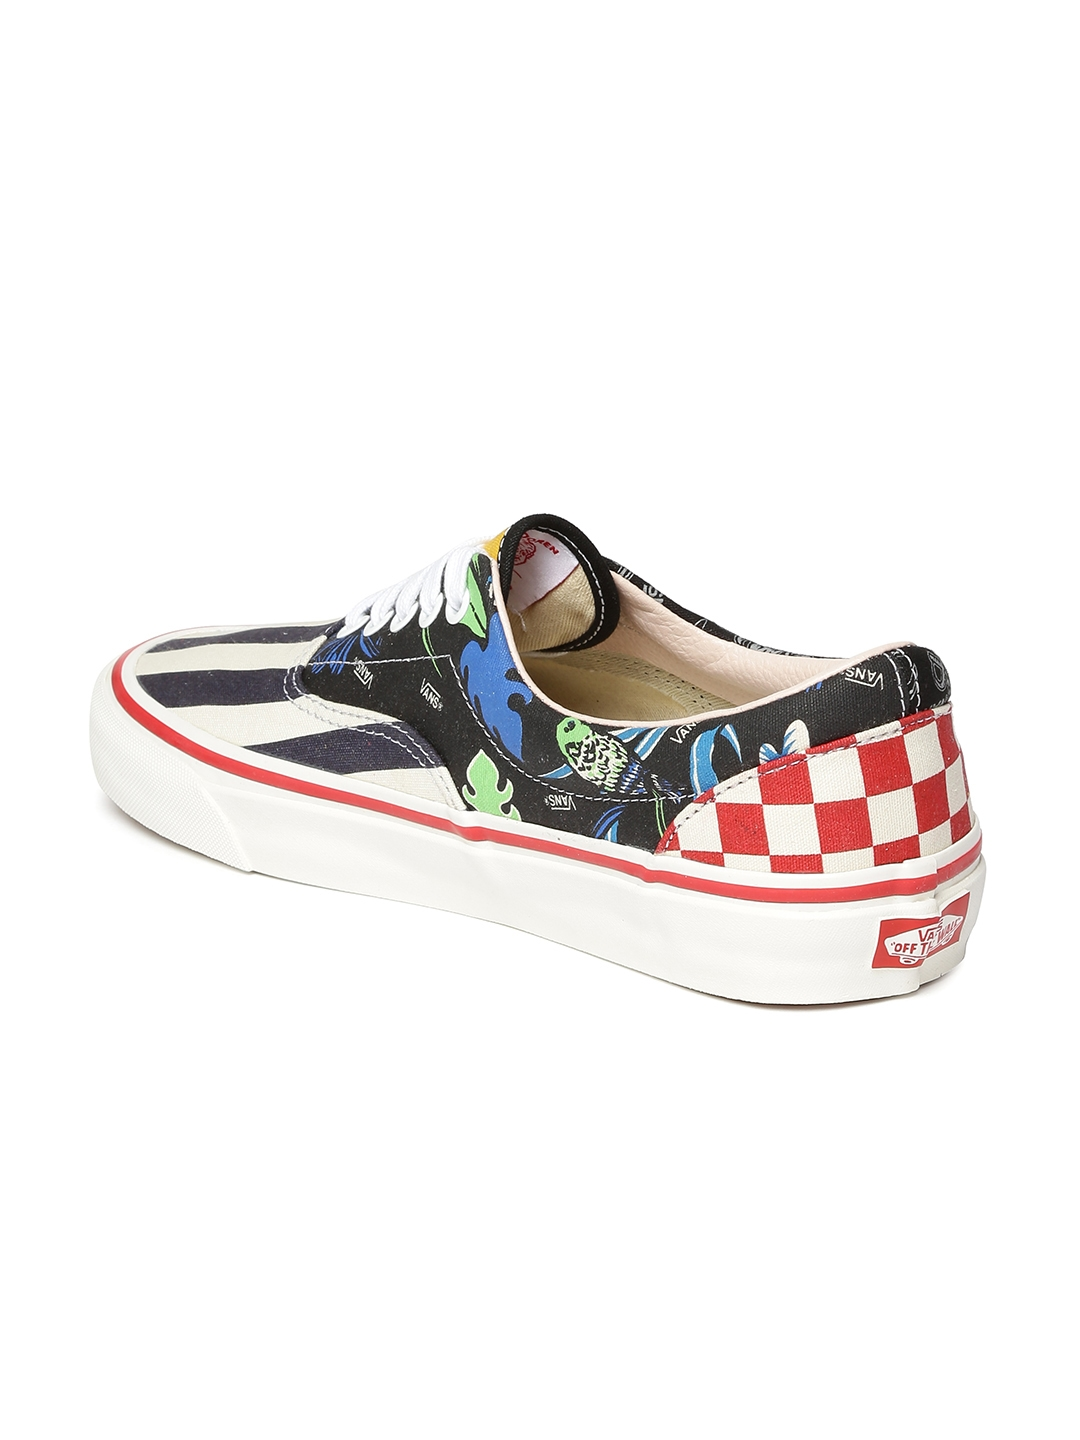 30abf65034 Buy Vans Unisex Navy   White Printed Sneakers - Casual Shoes for ...